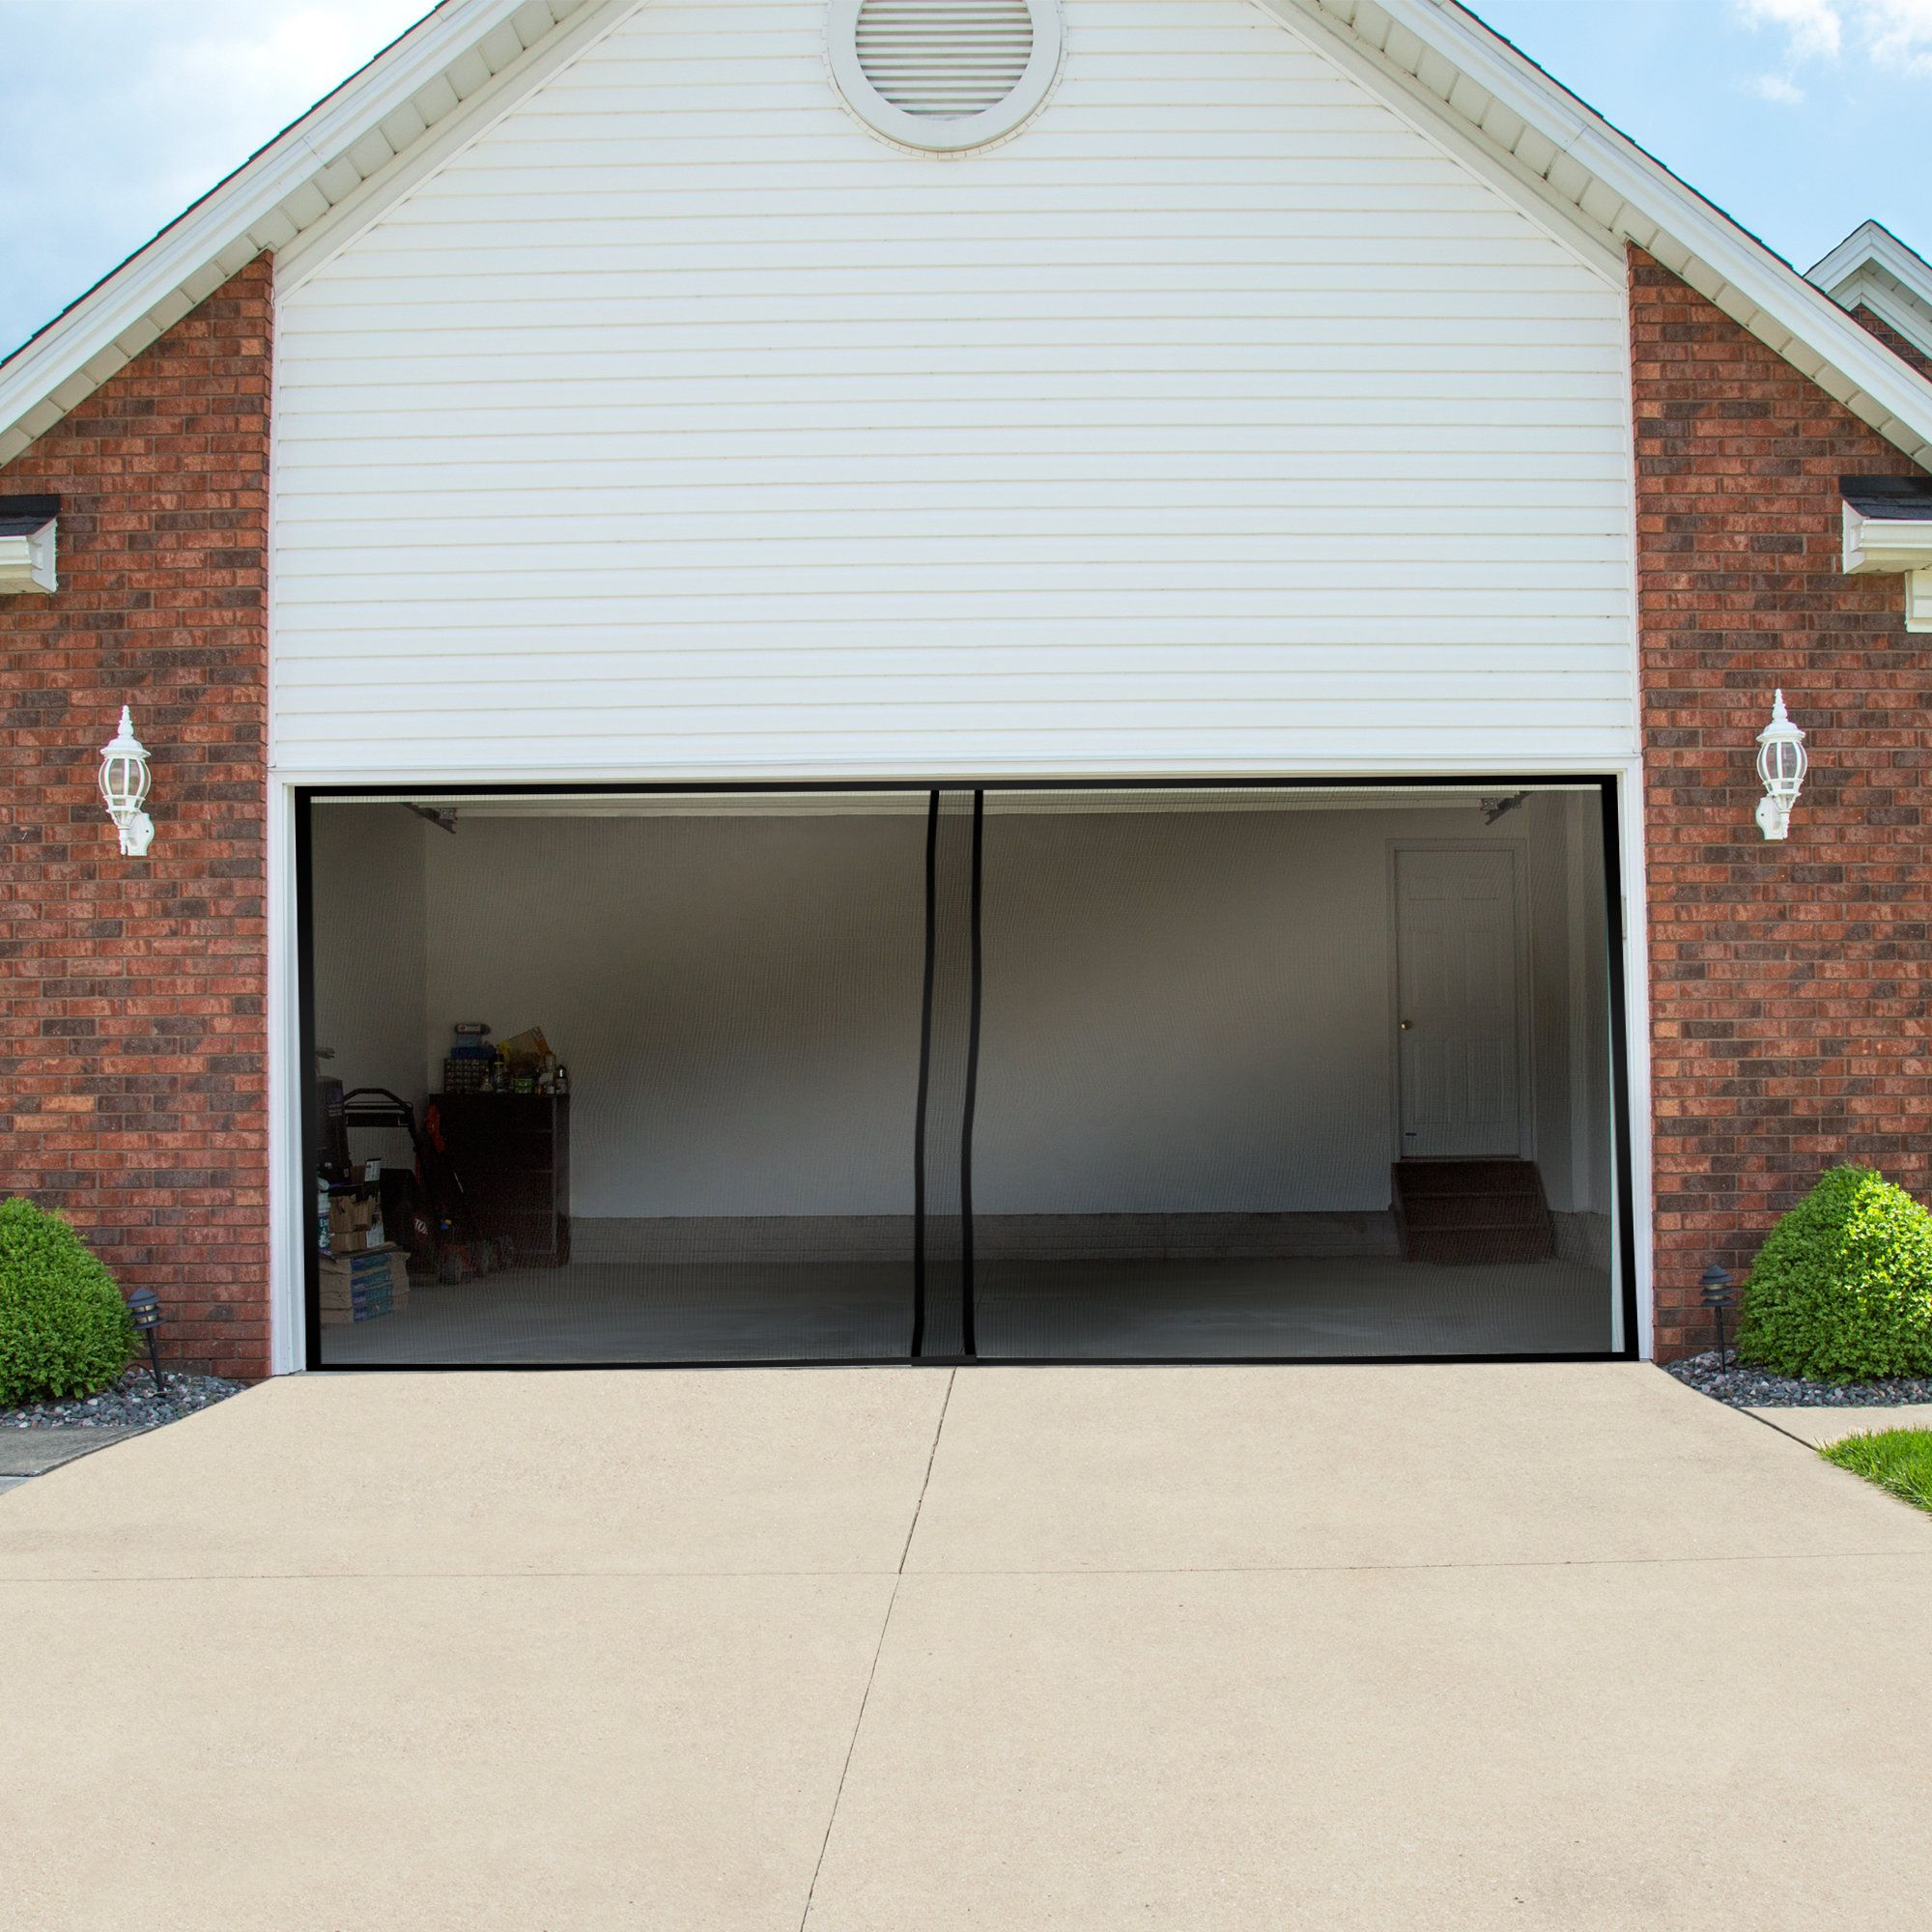 garage typical of affordable floor two att charming x nice ideas plan photo dimensions car design door